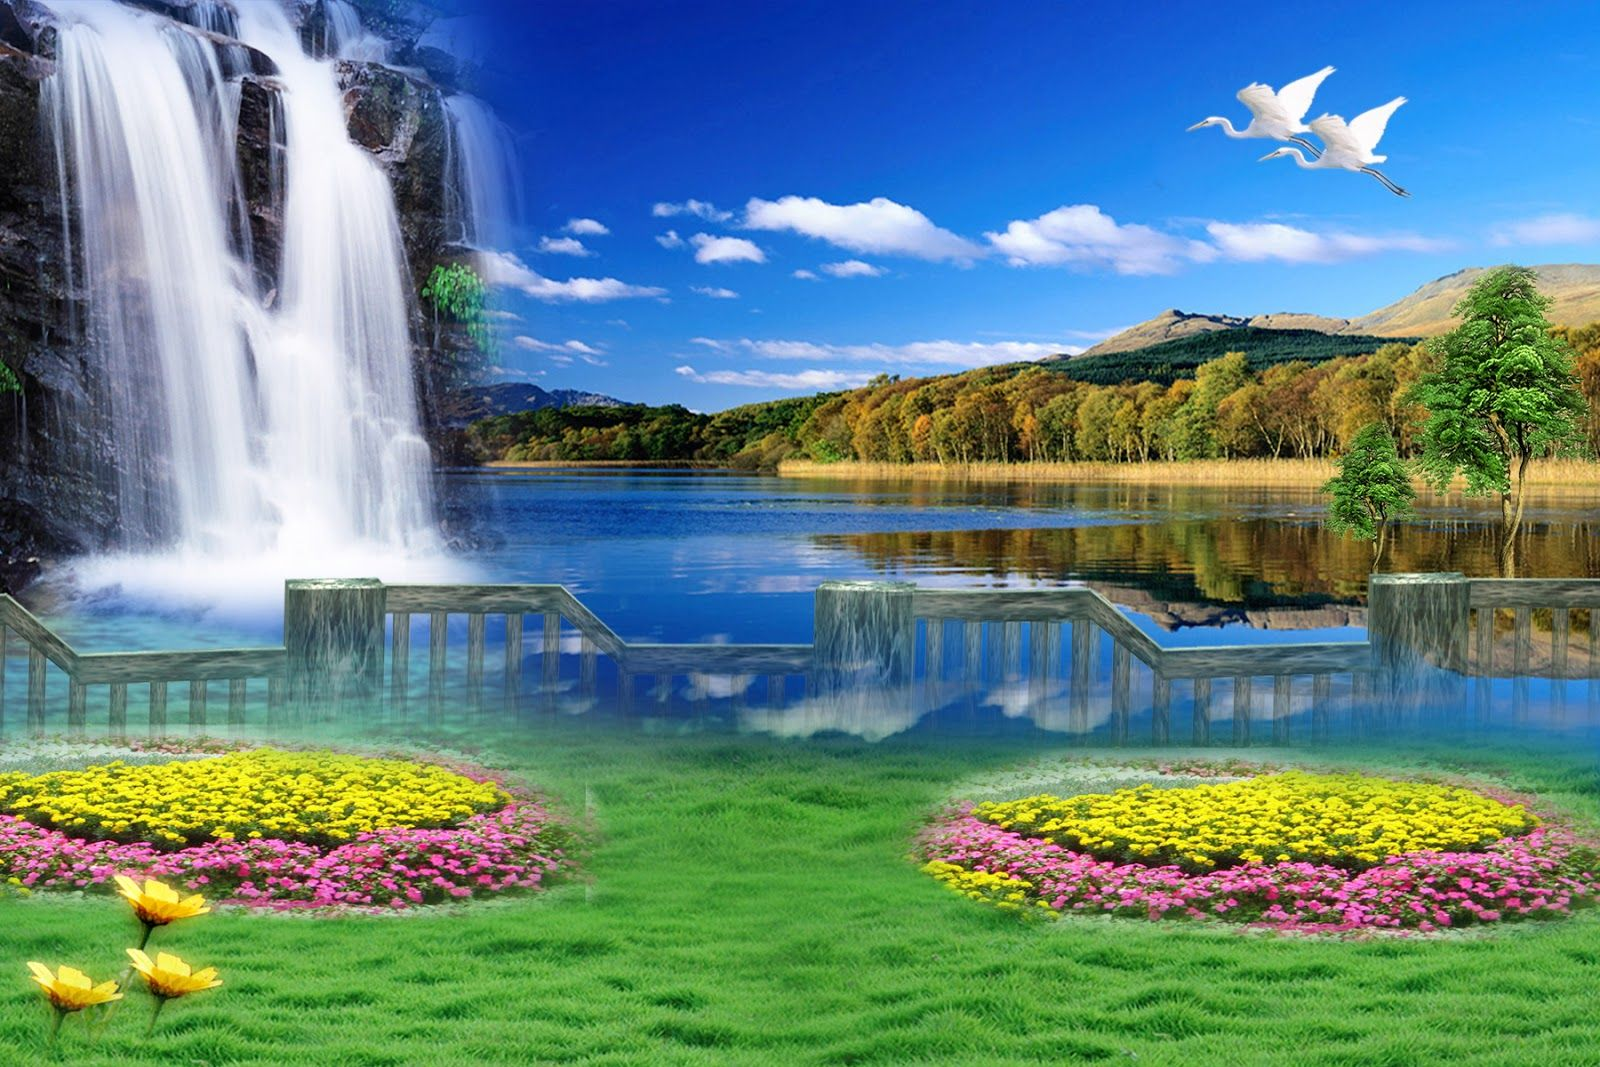 Nature Backgrounds Photoshop Editing Natural Photos 23946wall Jpg Nature Backgrounds Photoshop Backgrounds Background Pictures